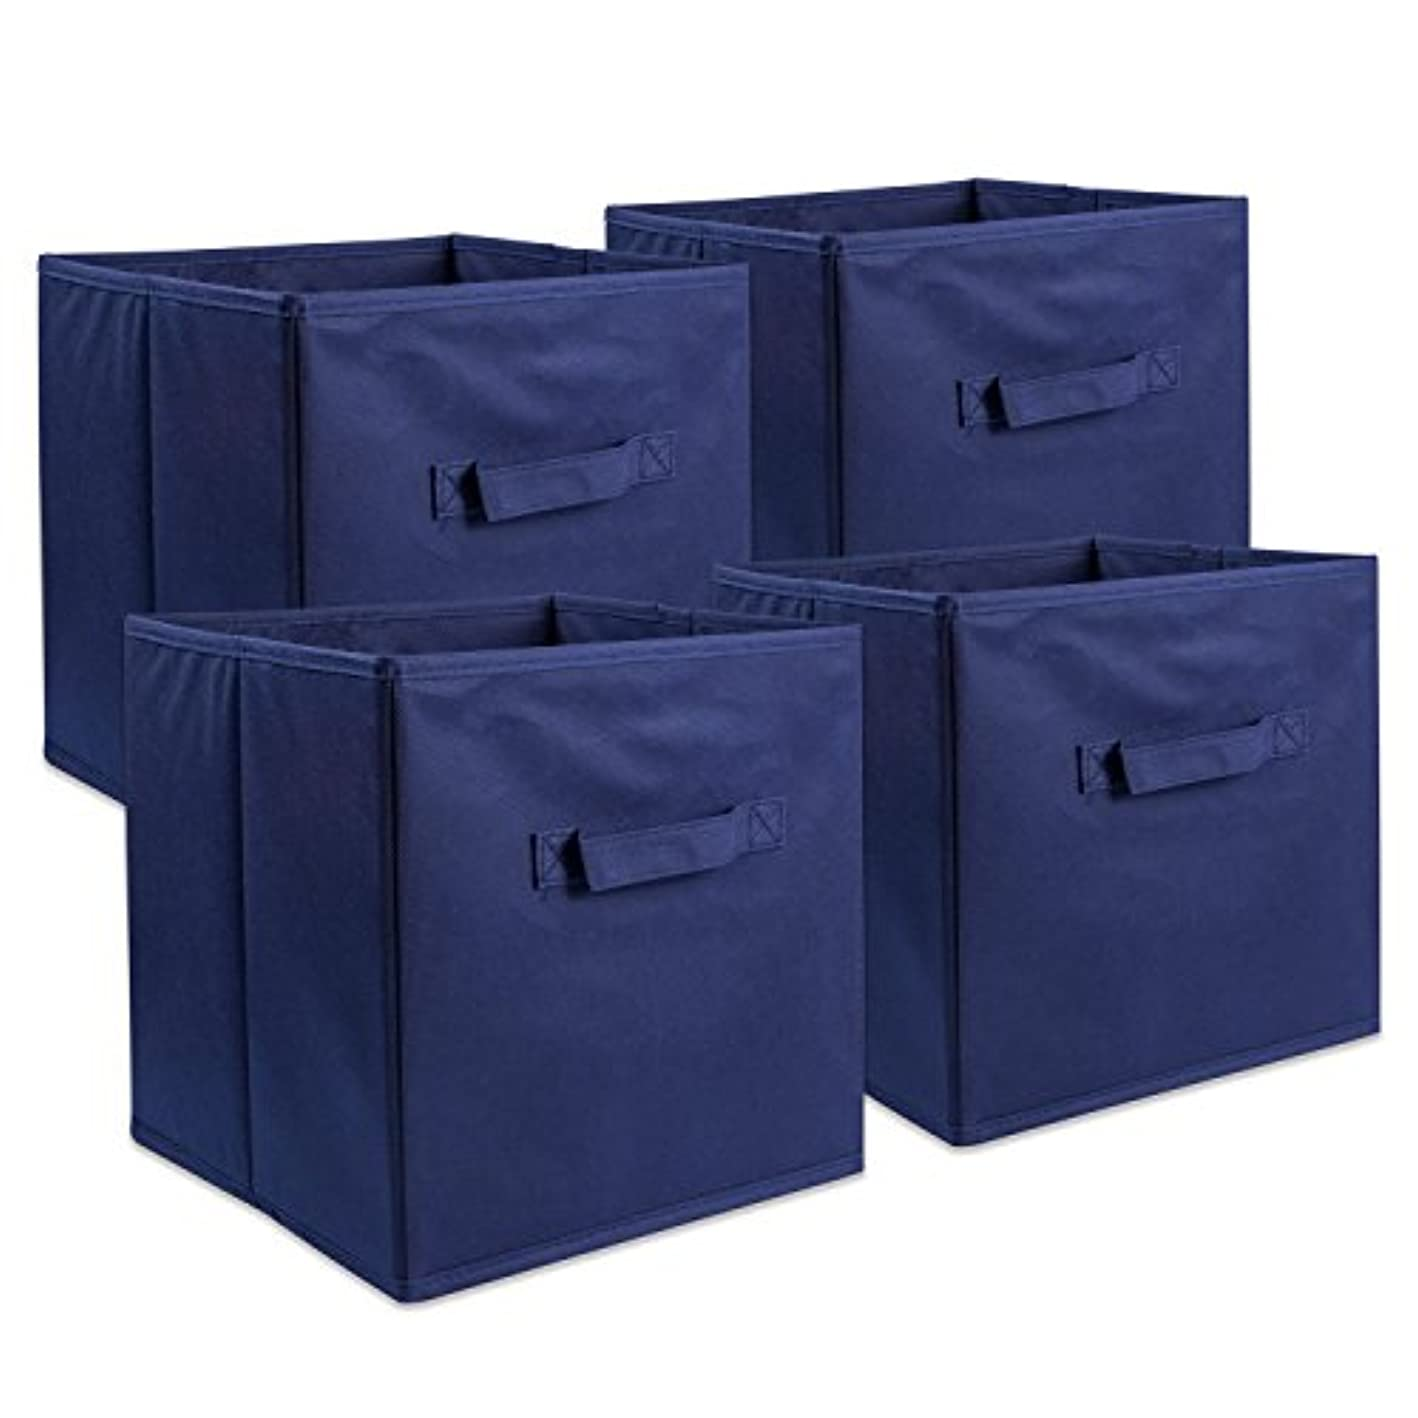 DII Foldable Fabric Storage Containers for Nurseries, Offices, Closets, Home Décor, Cube Organizers & Everyday Use, 11 x 11 x 11 Nautical Blue - Set of 4, Small